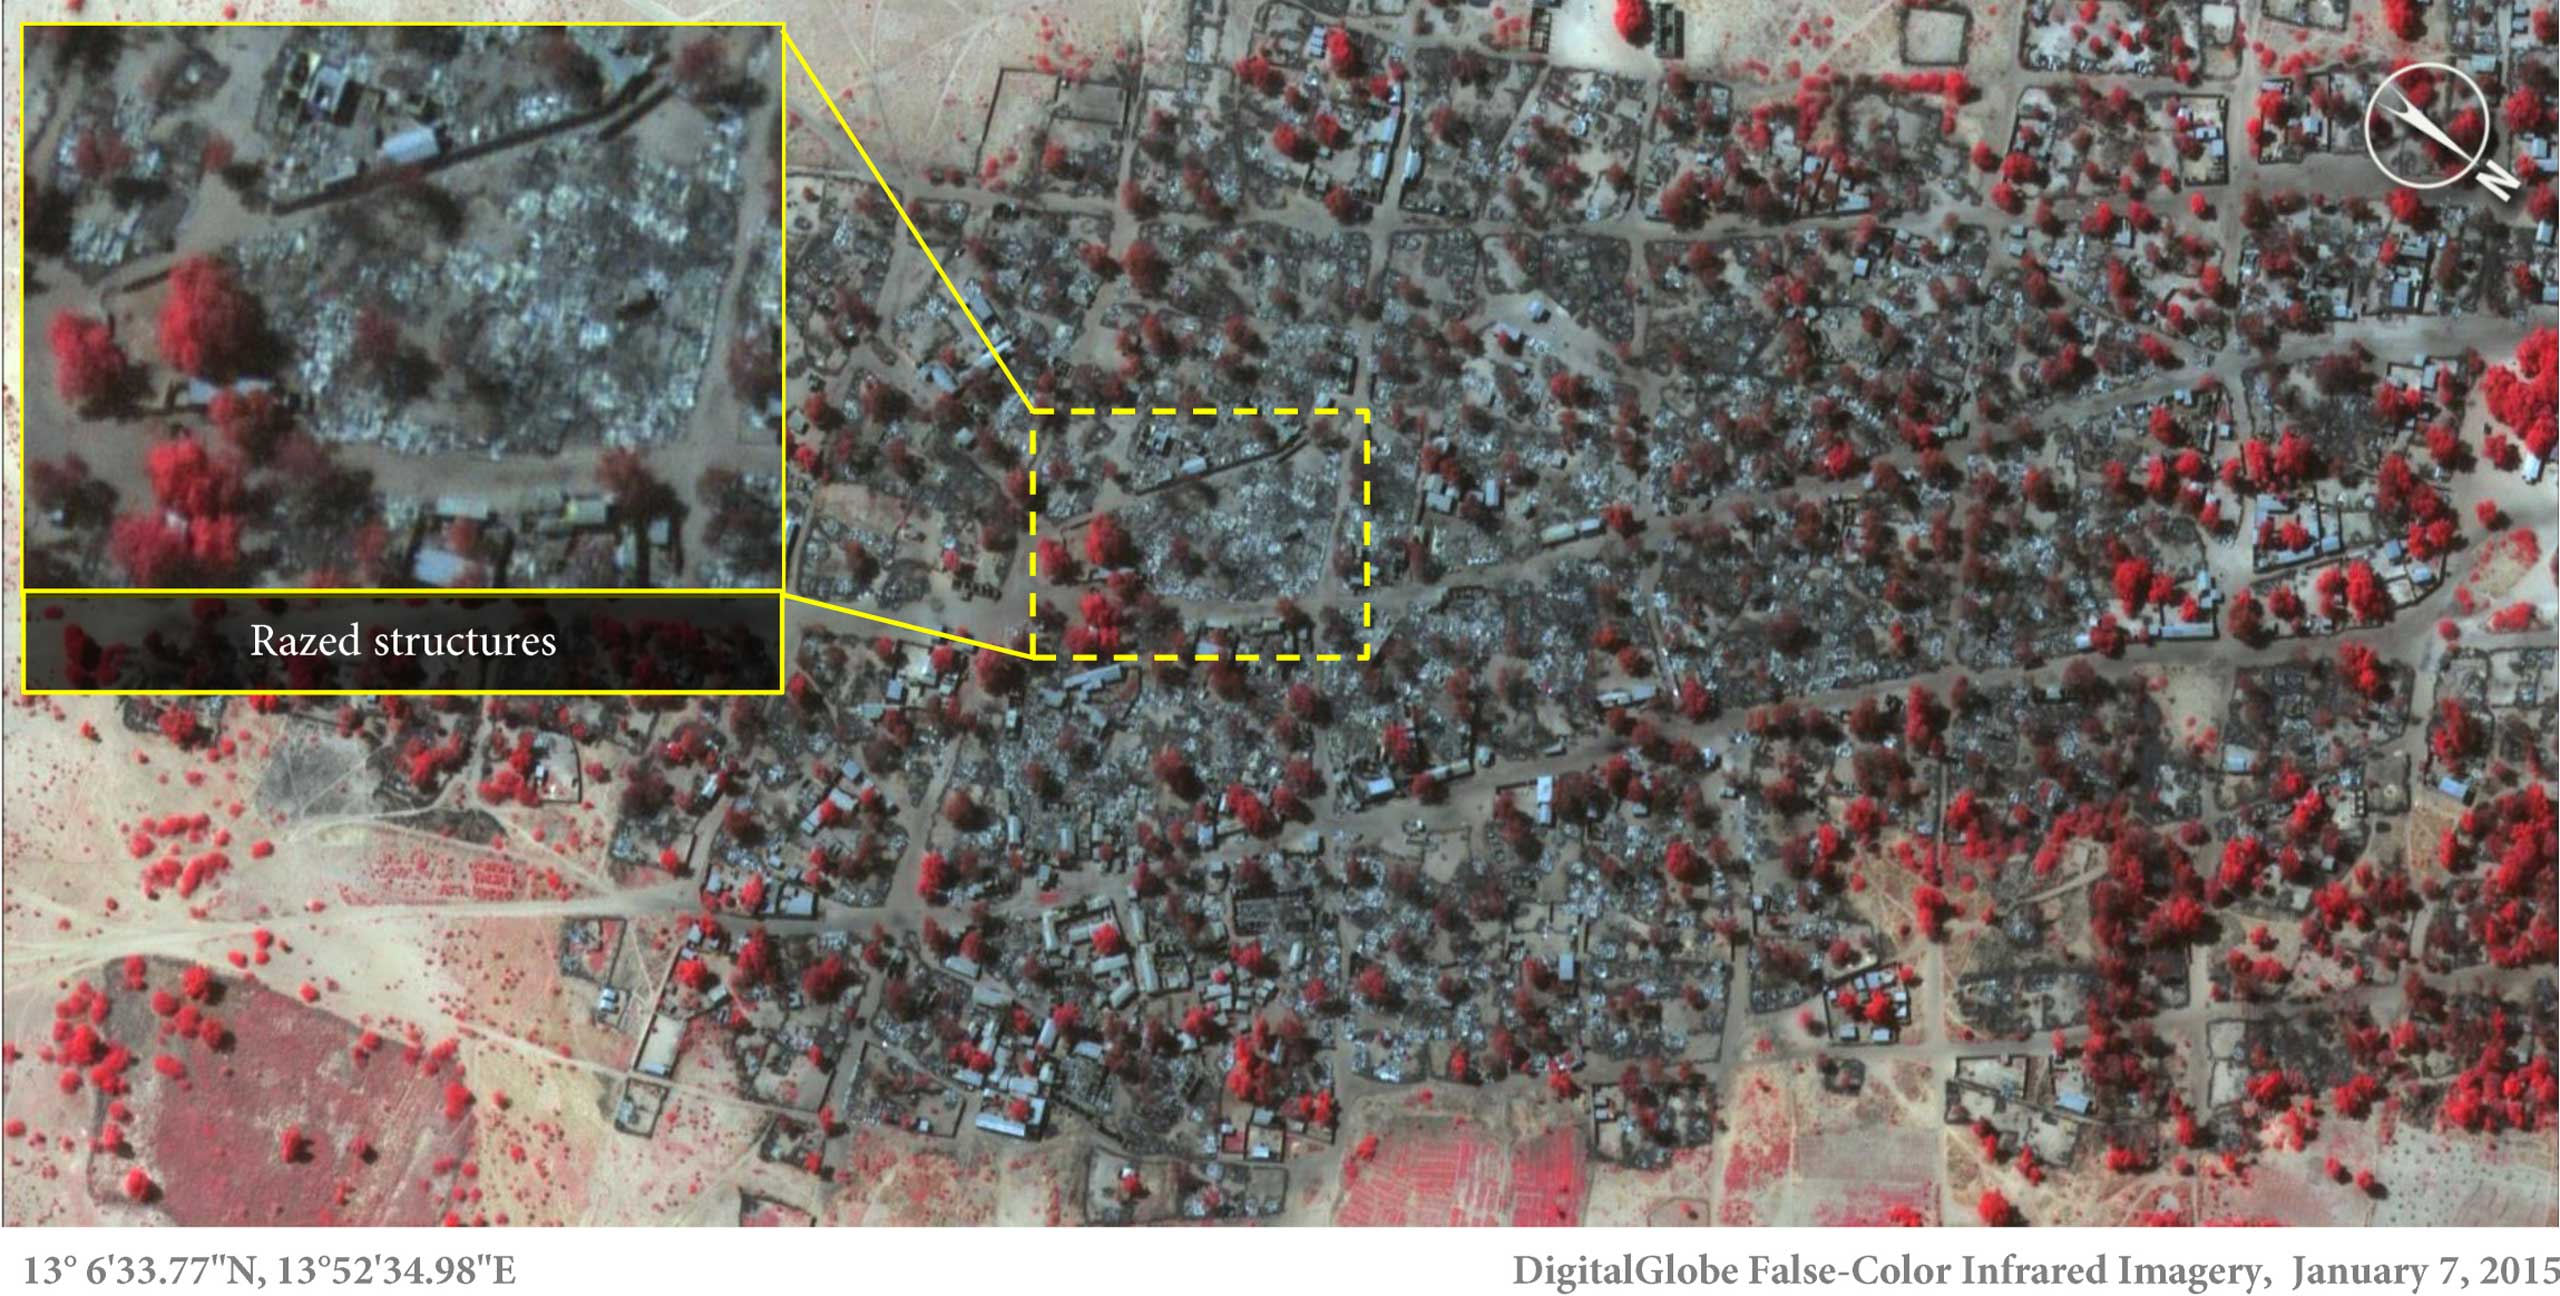 The village of Doro Baga is seen in northeastern Nigeria on Jan. 7, 2015, after the attack. (This shows almost all structures were razed. Areas in red show healthy vegetation.)